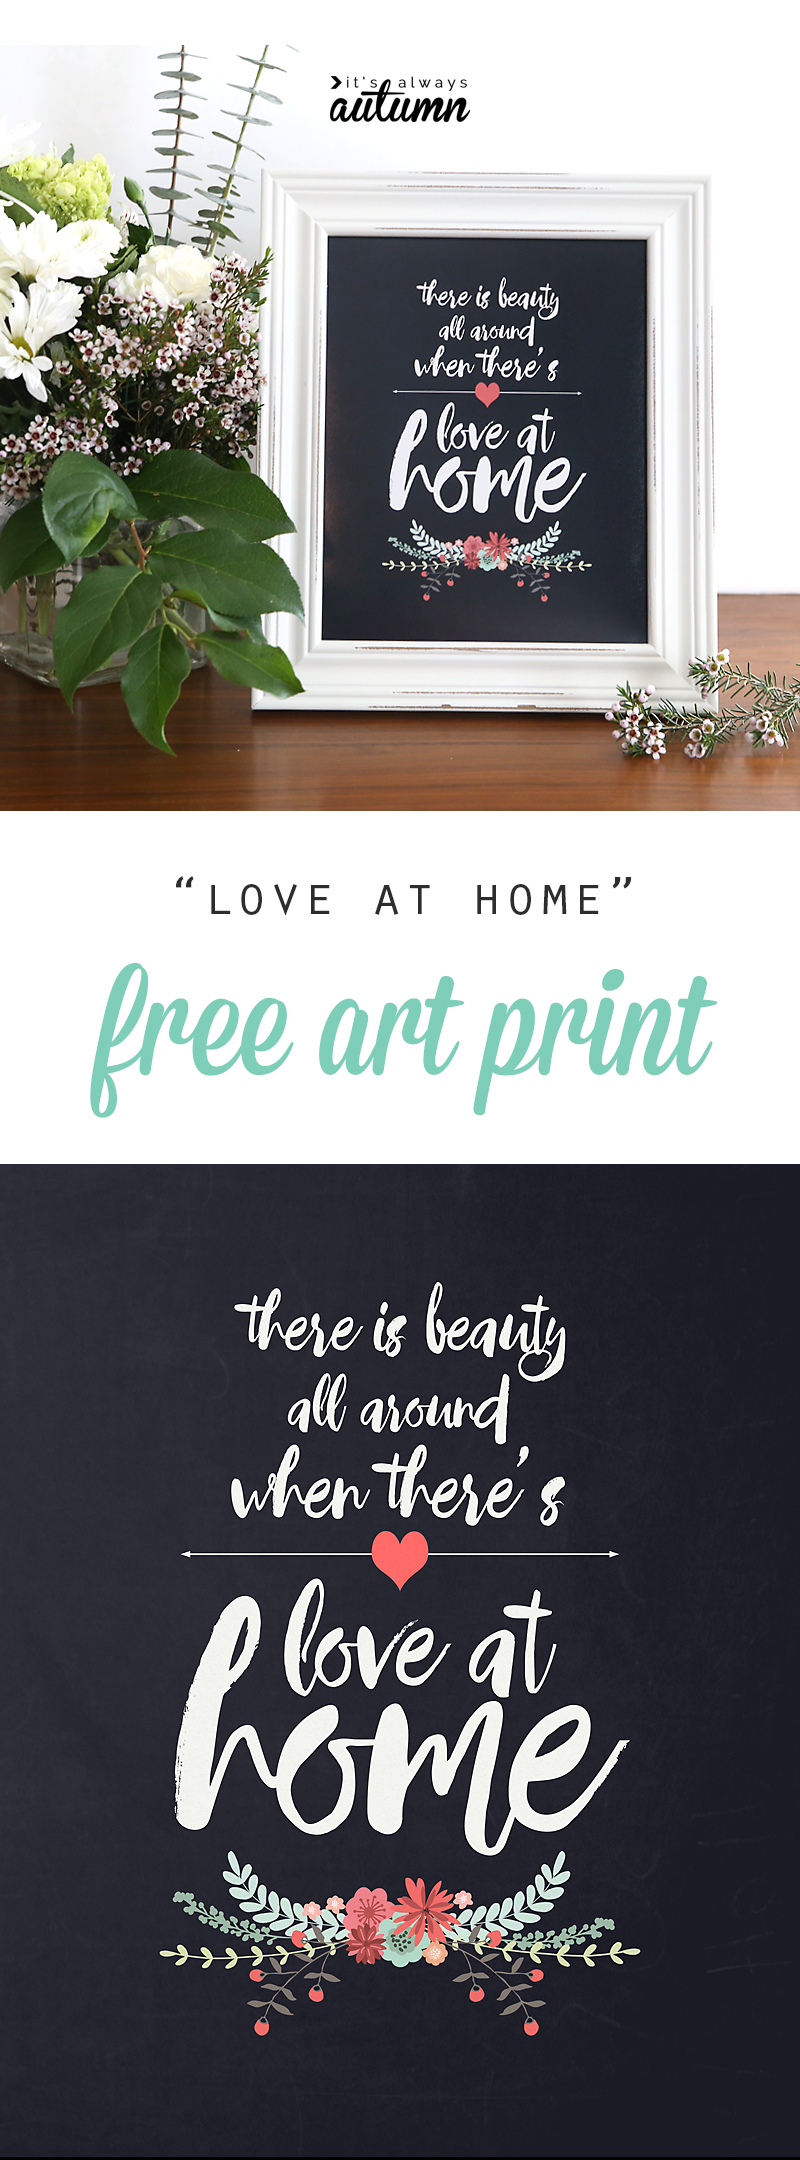 Lovely free art print of this quote: there is beauty all around when there's love at home. Free LDS quote printable, perfect for home decor or as a gift.